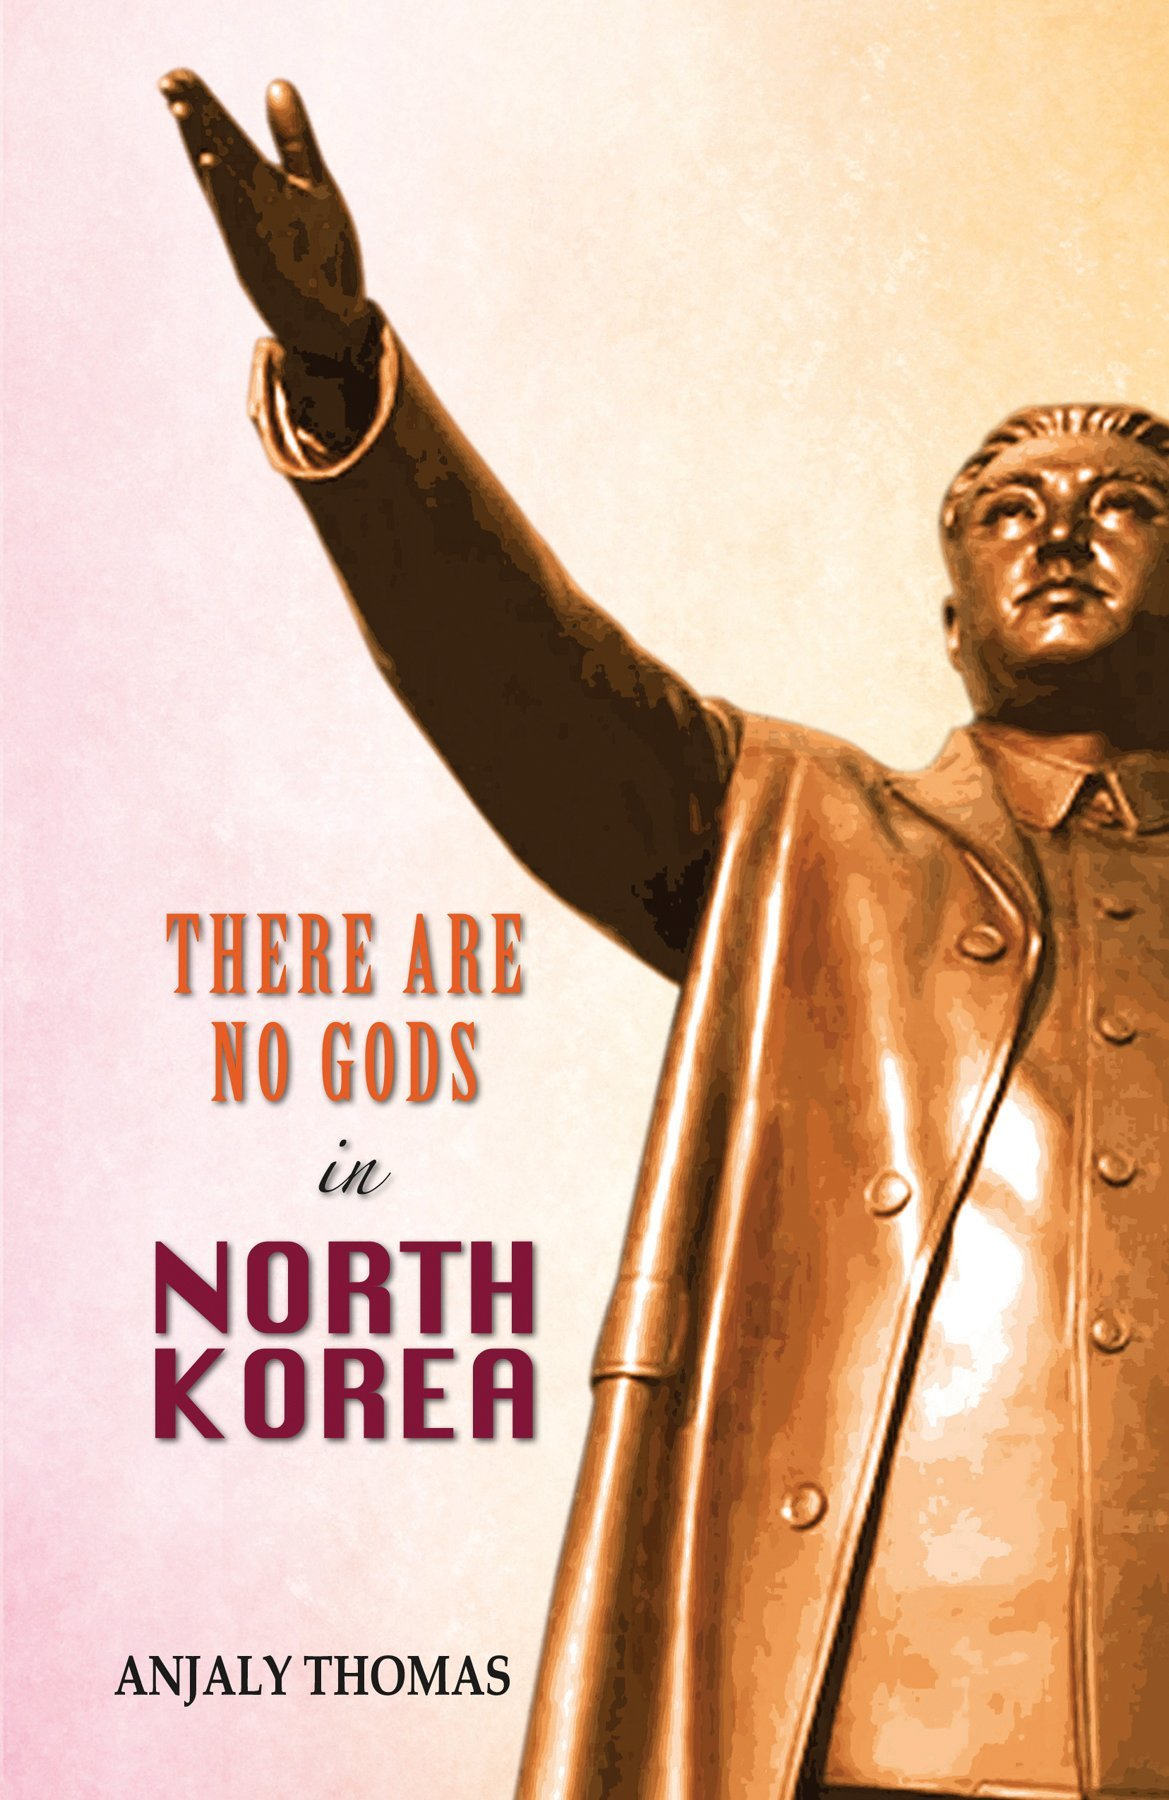 Book Review:There are no Gods in North Korea